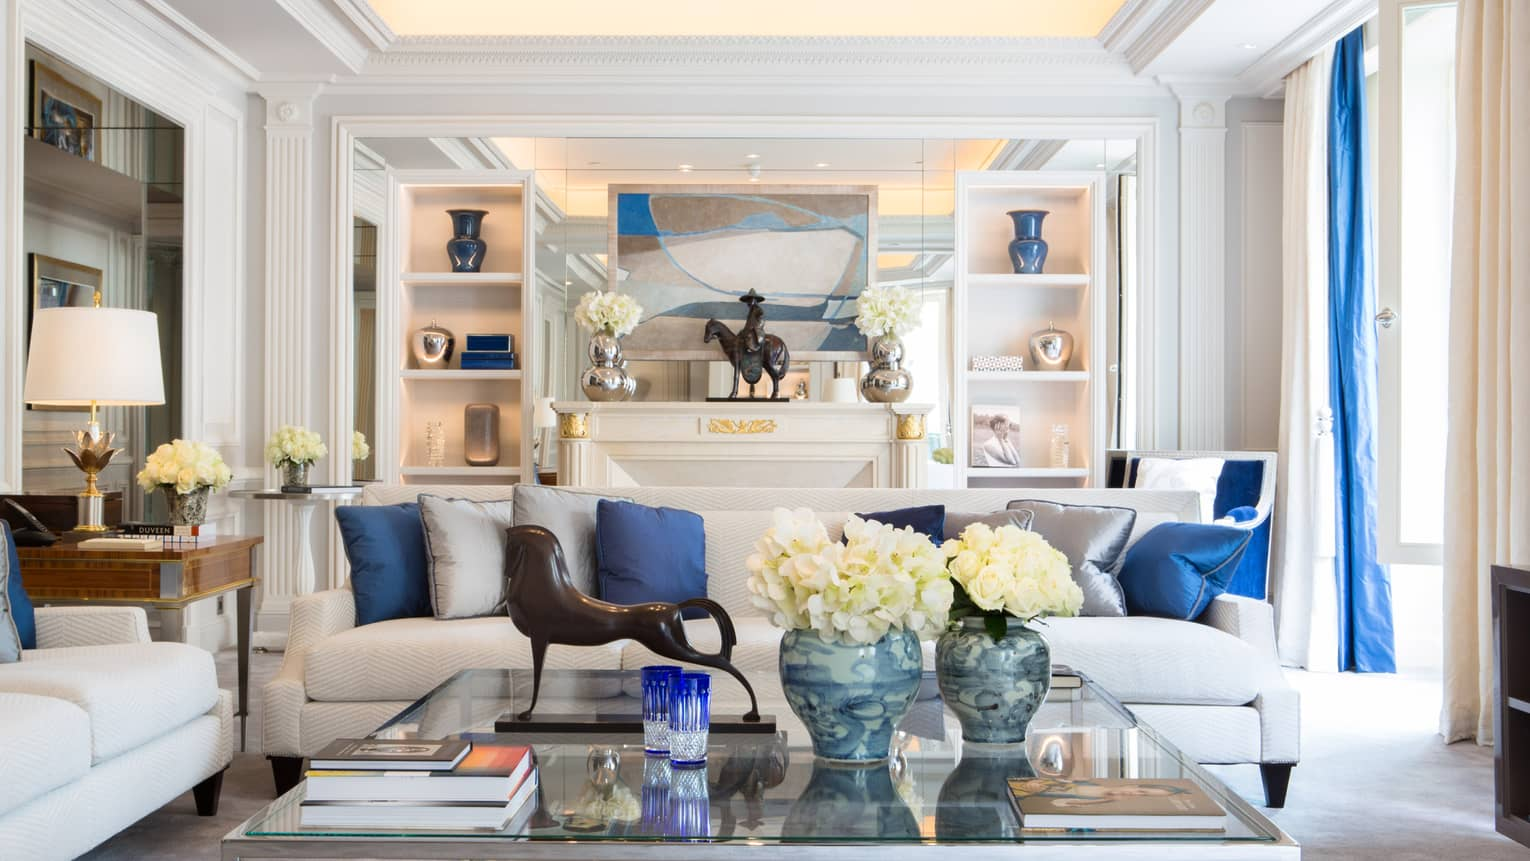 Presidential Suite long white sofa with blue pillows, glass coffee table with modern horse statue, flowers